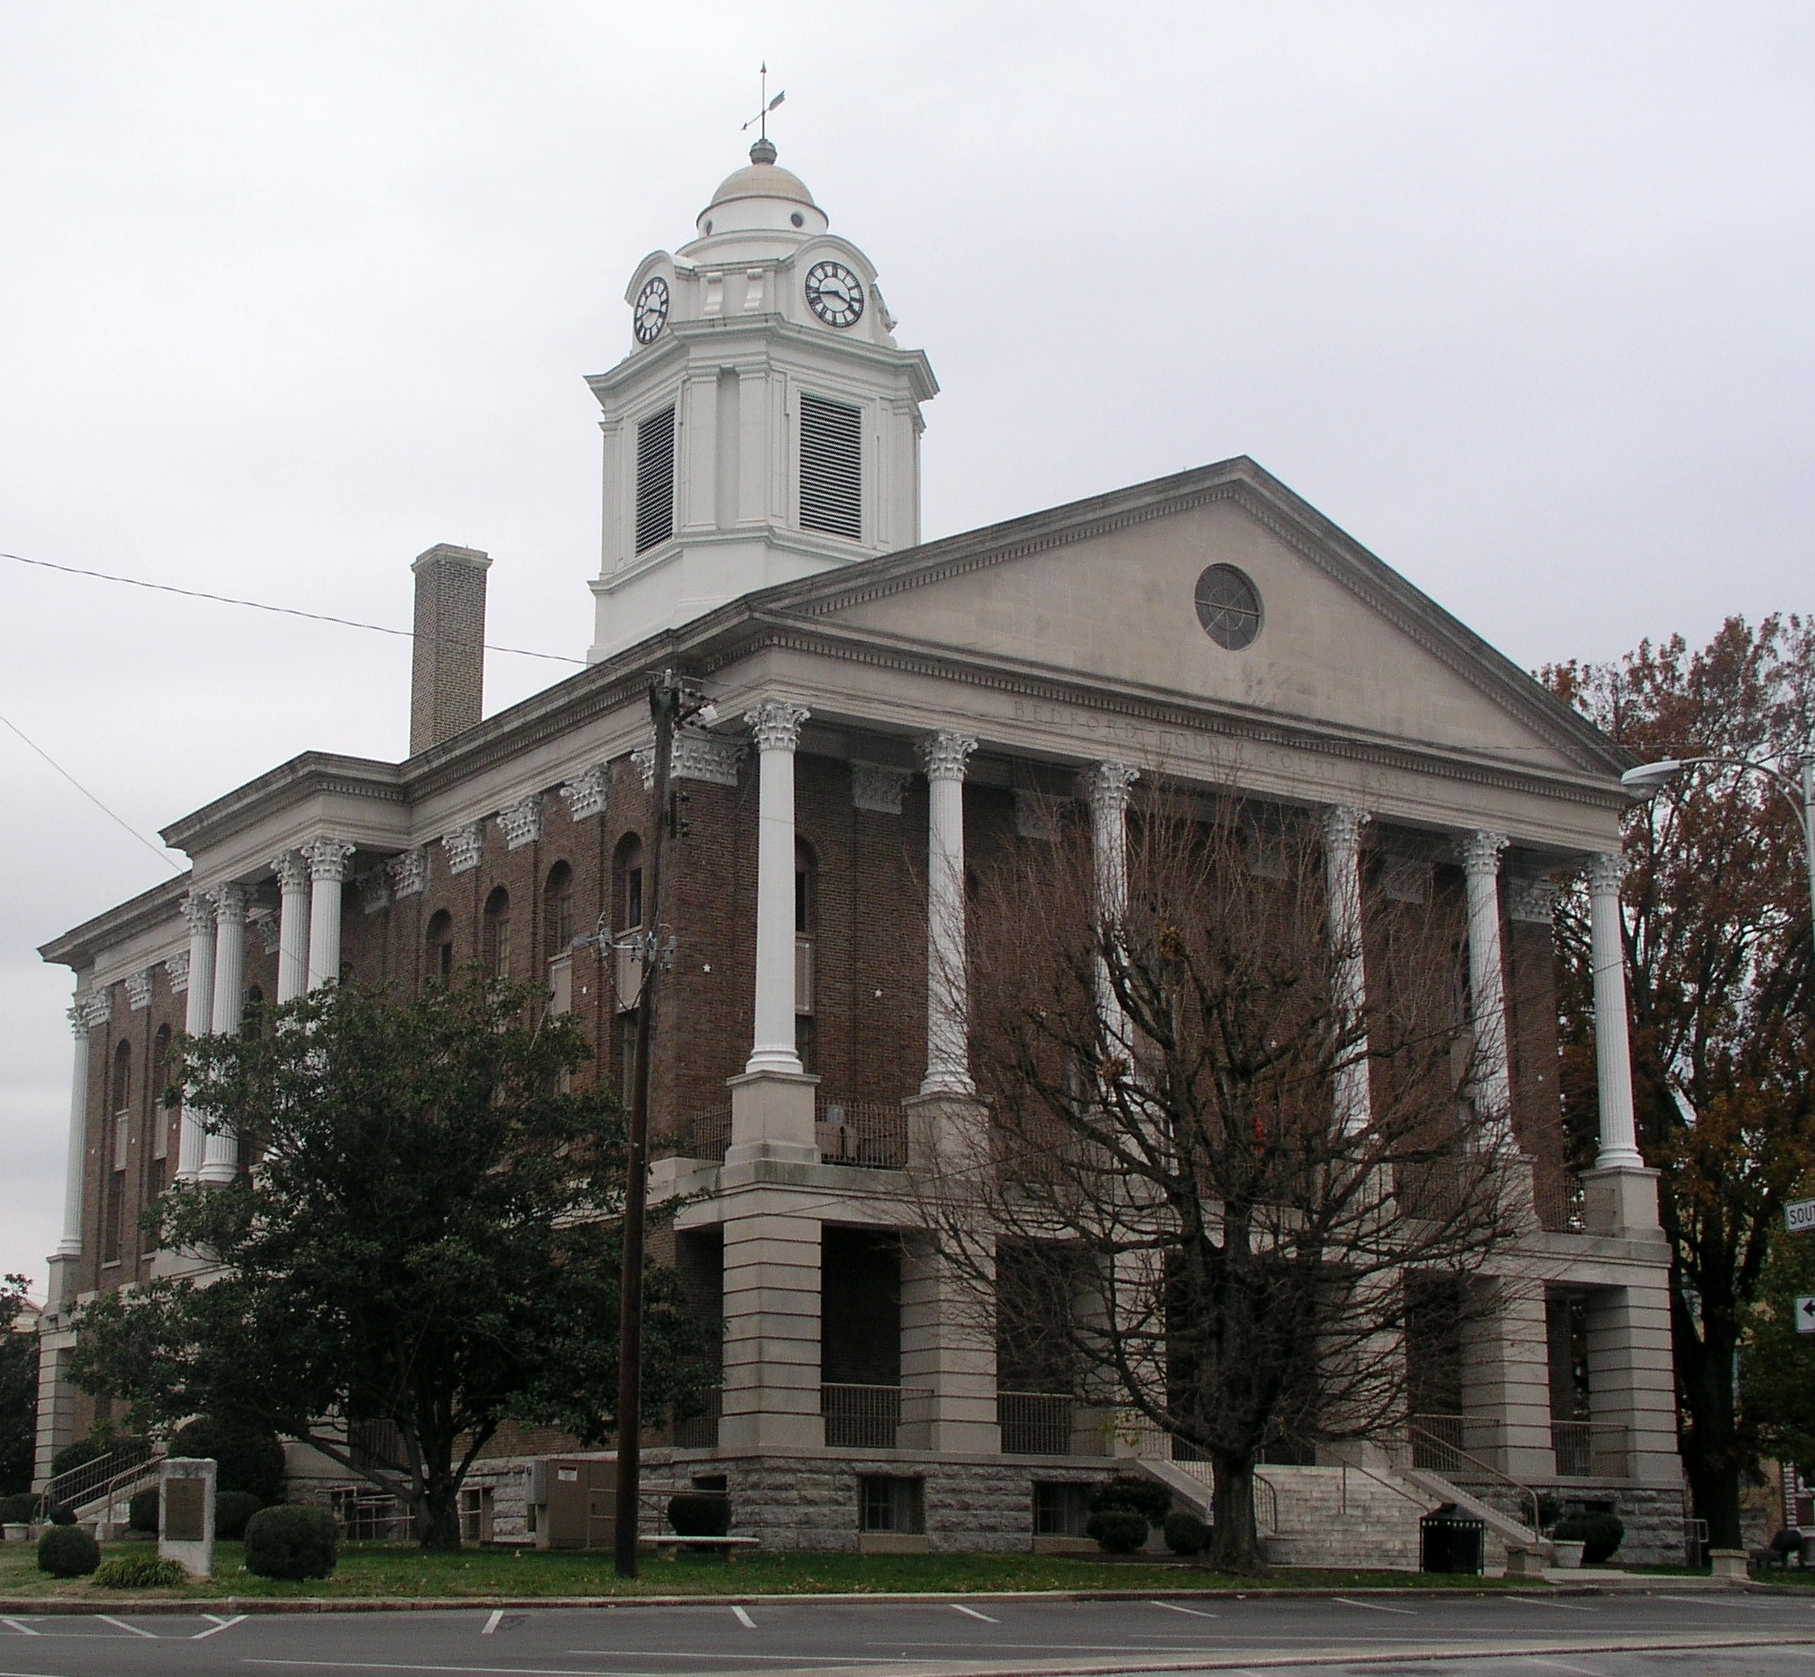 shelbyville tn dating Looking for events in shelbyville whether you're a local, new in town, or just passing through, you'll be sure to find something on eventbrite that piques your interest.